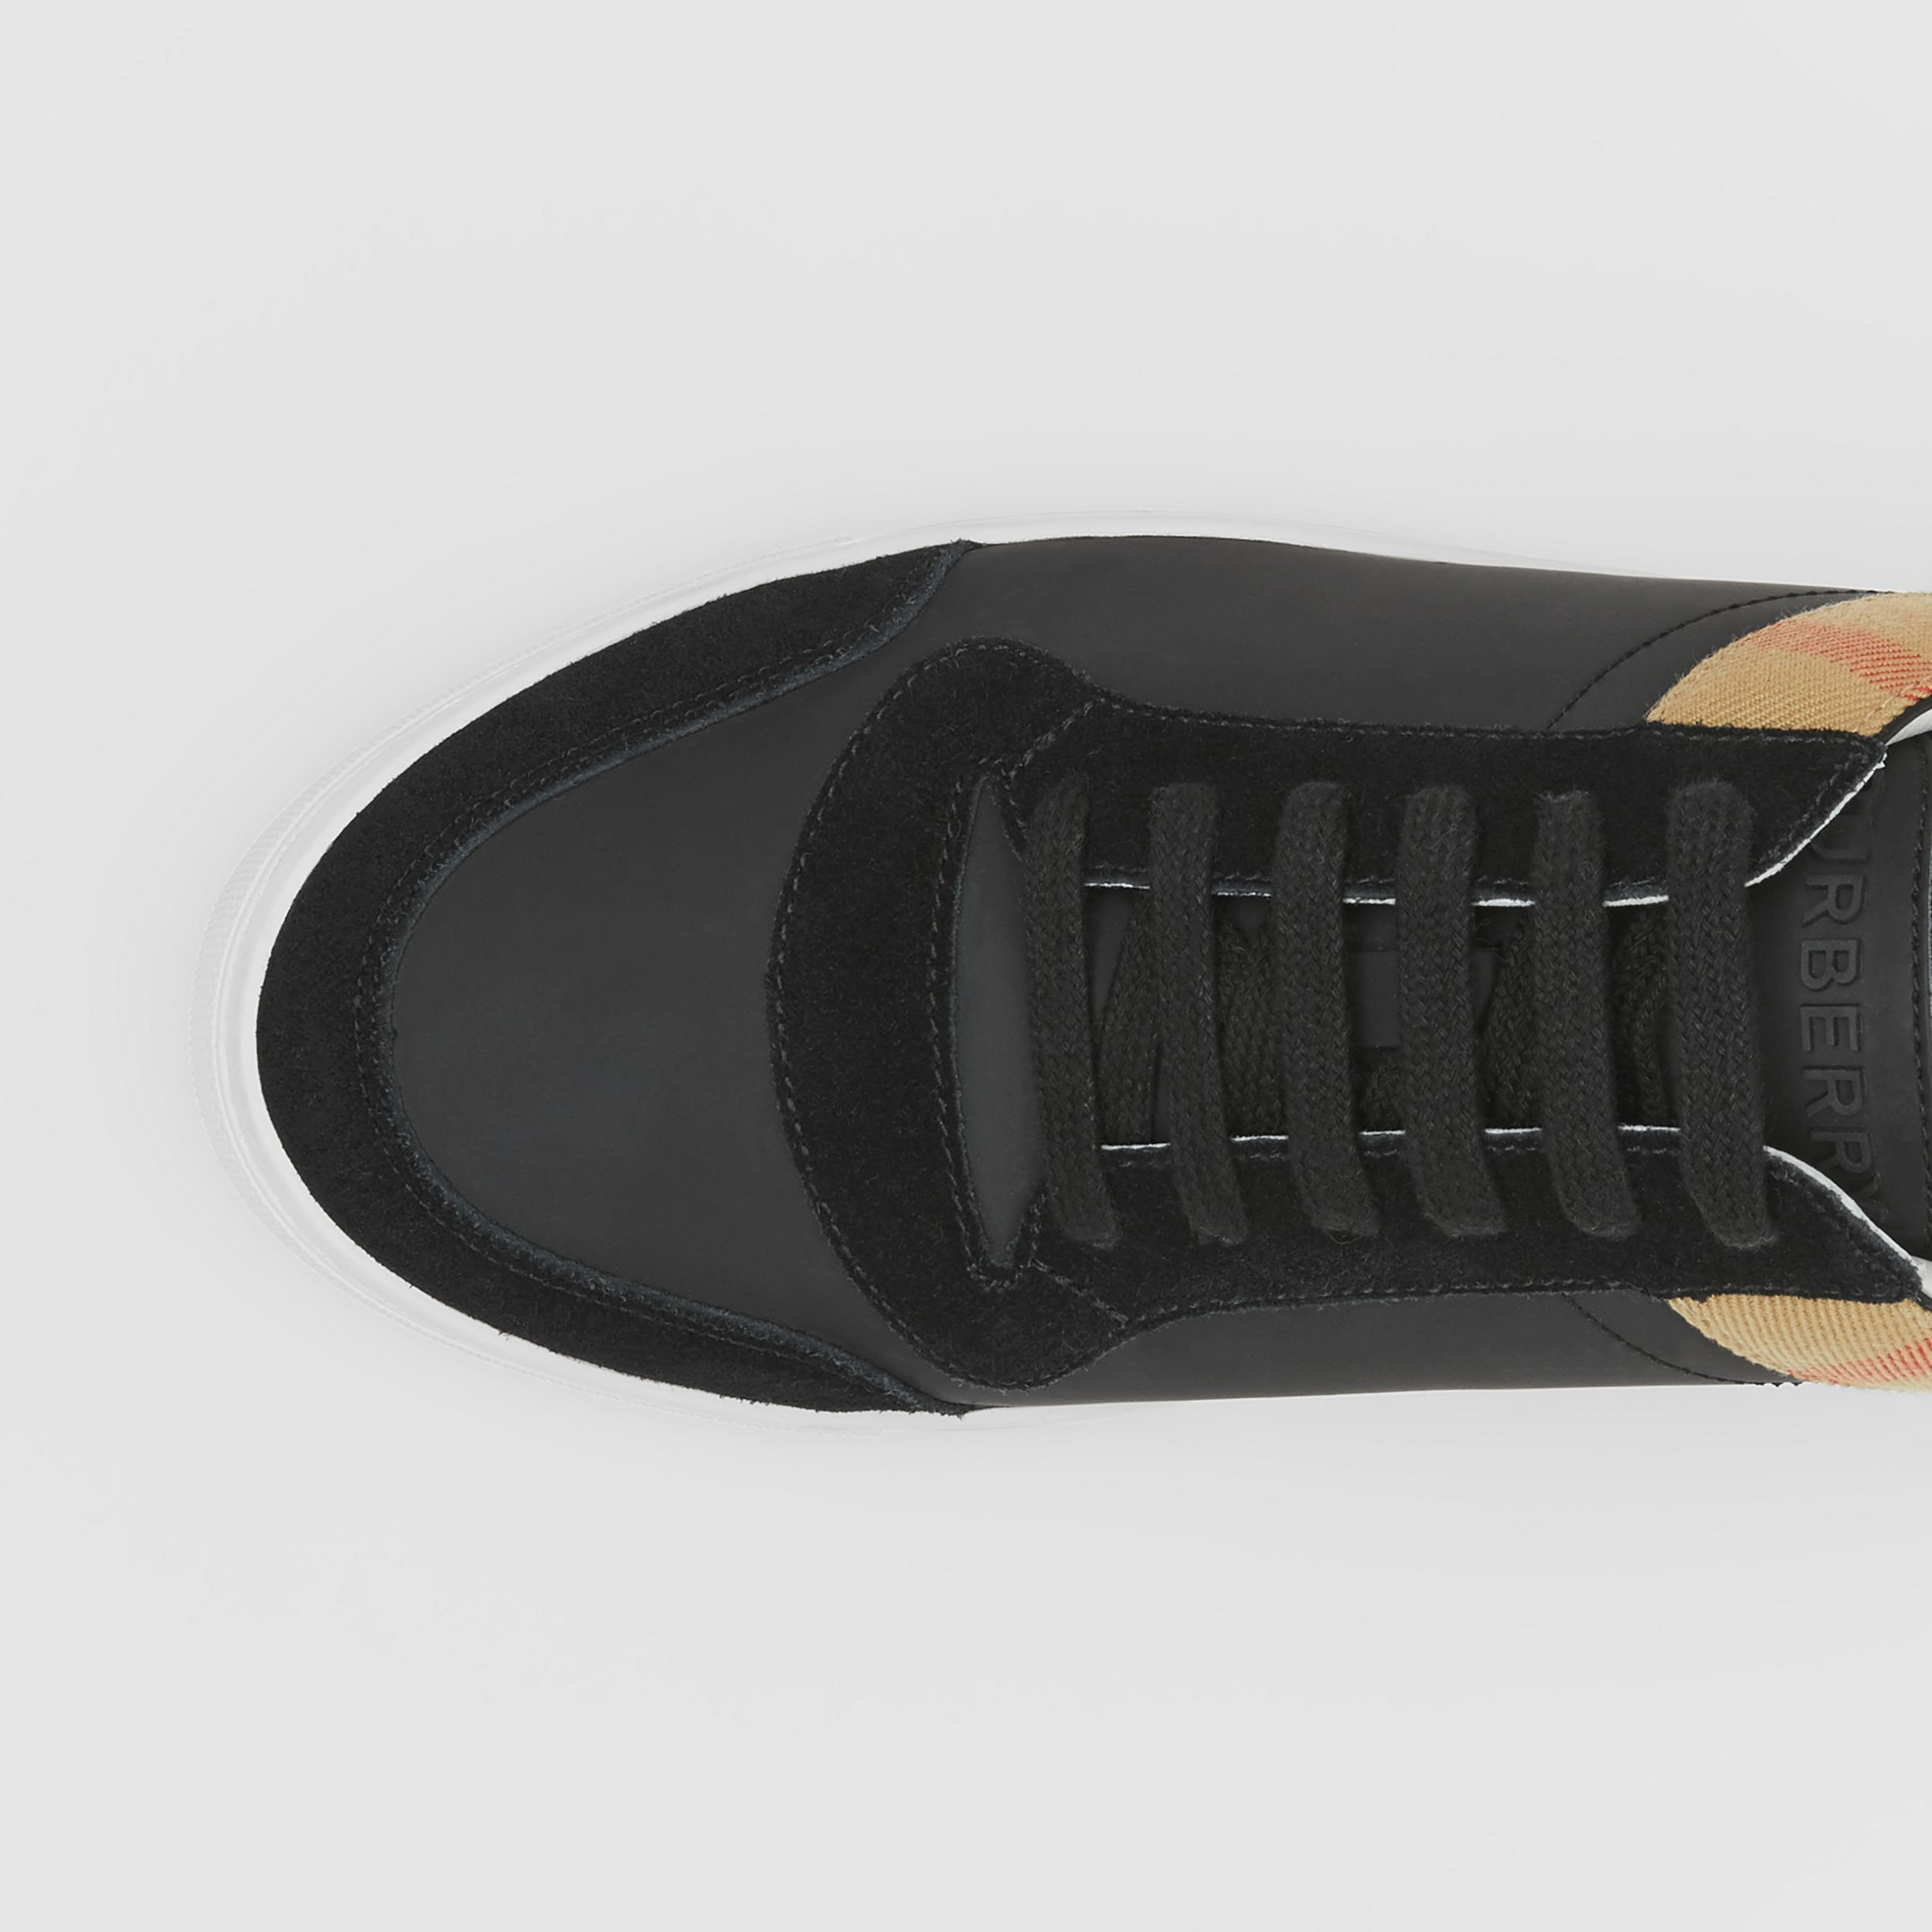 Leather, Suede and House Check Sneakers in Black - Men | Burberry United States - 2